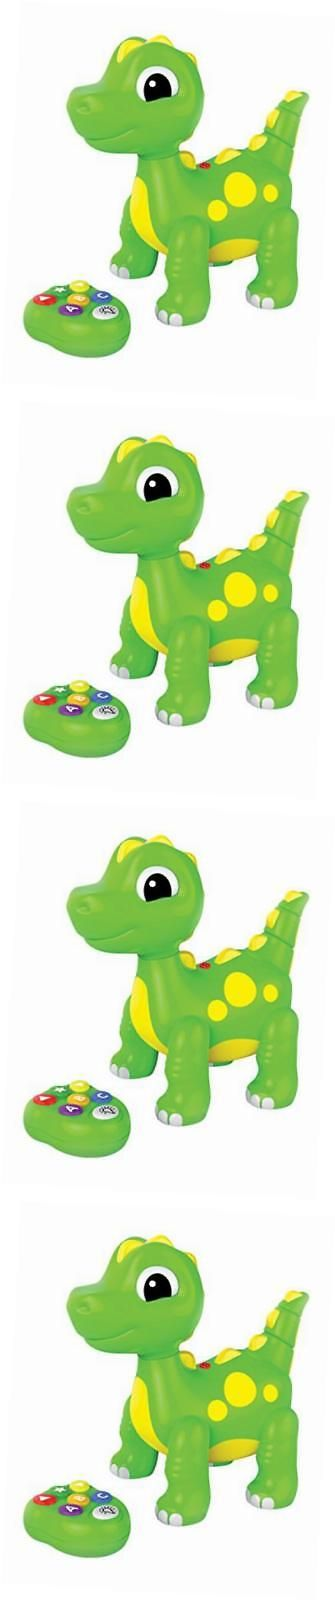 Other Alphabet and Language Toys 11732: Remote Control Abc Dancing Dino -> BUY IT NOW ONLY: $48.64 on eBay!